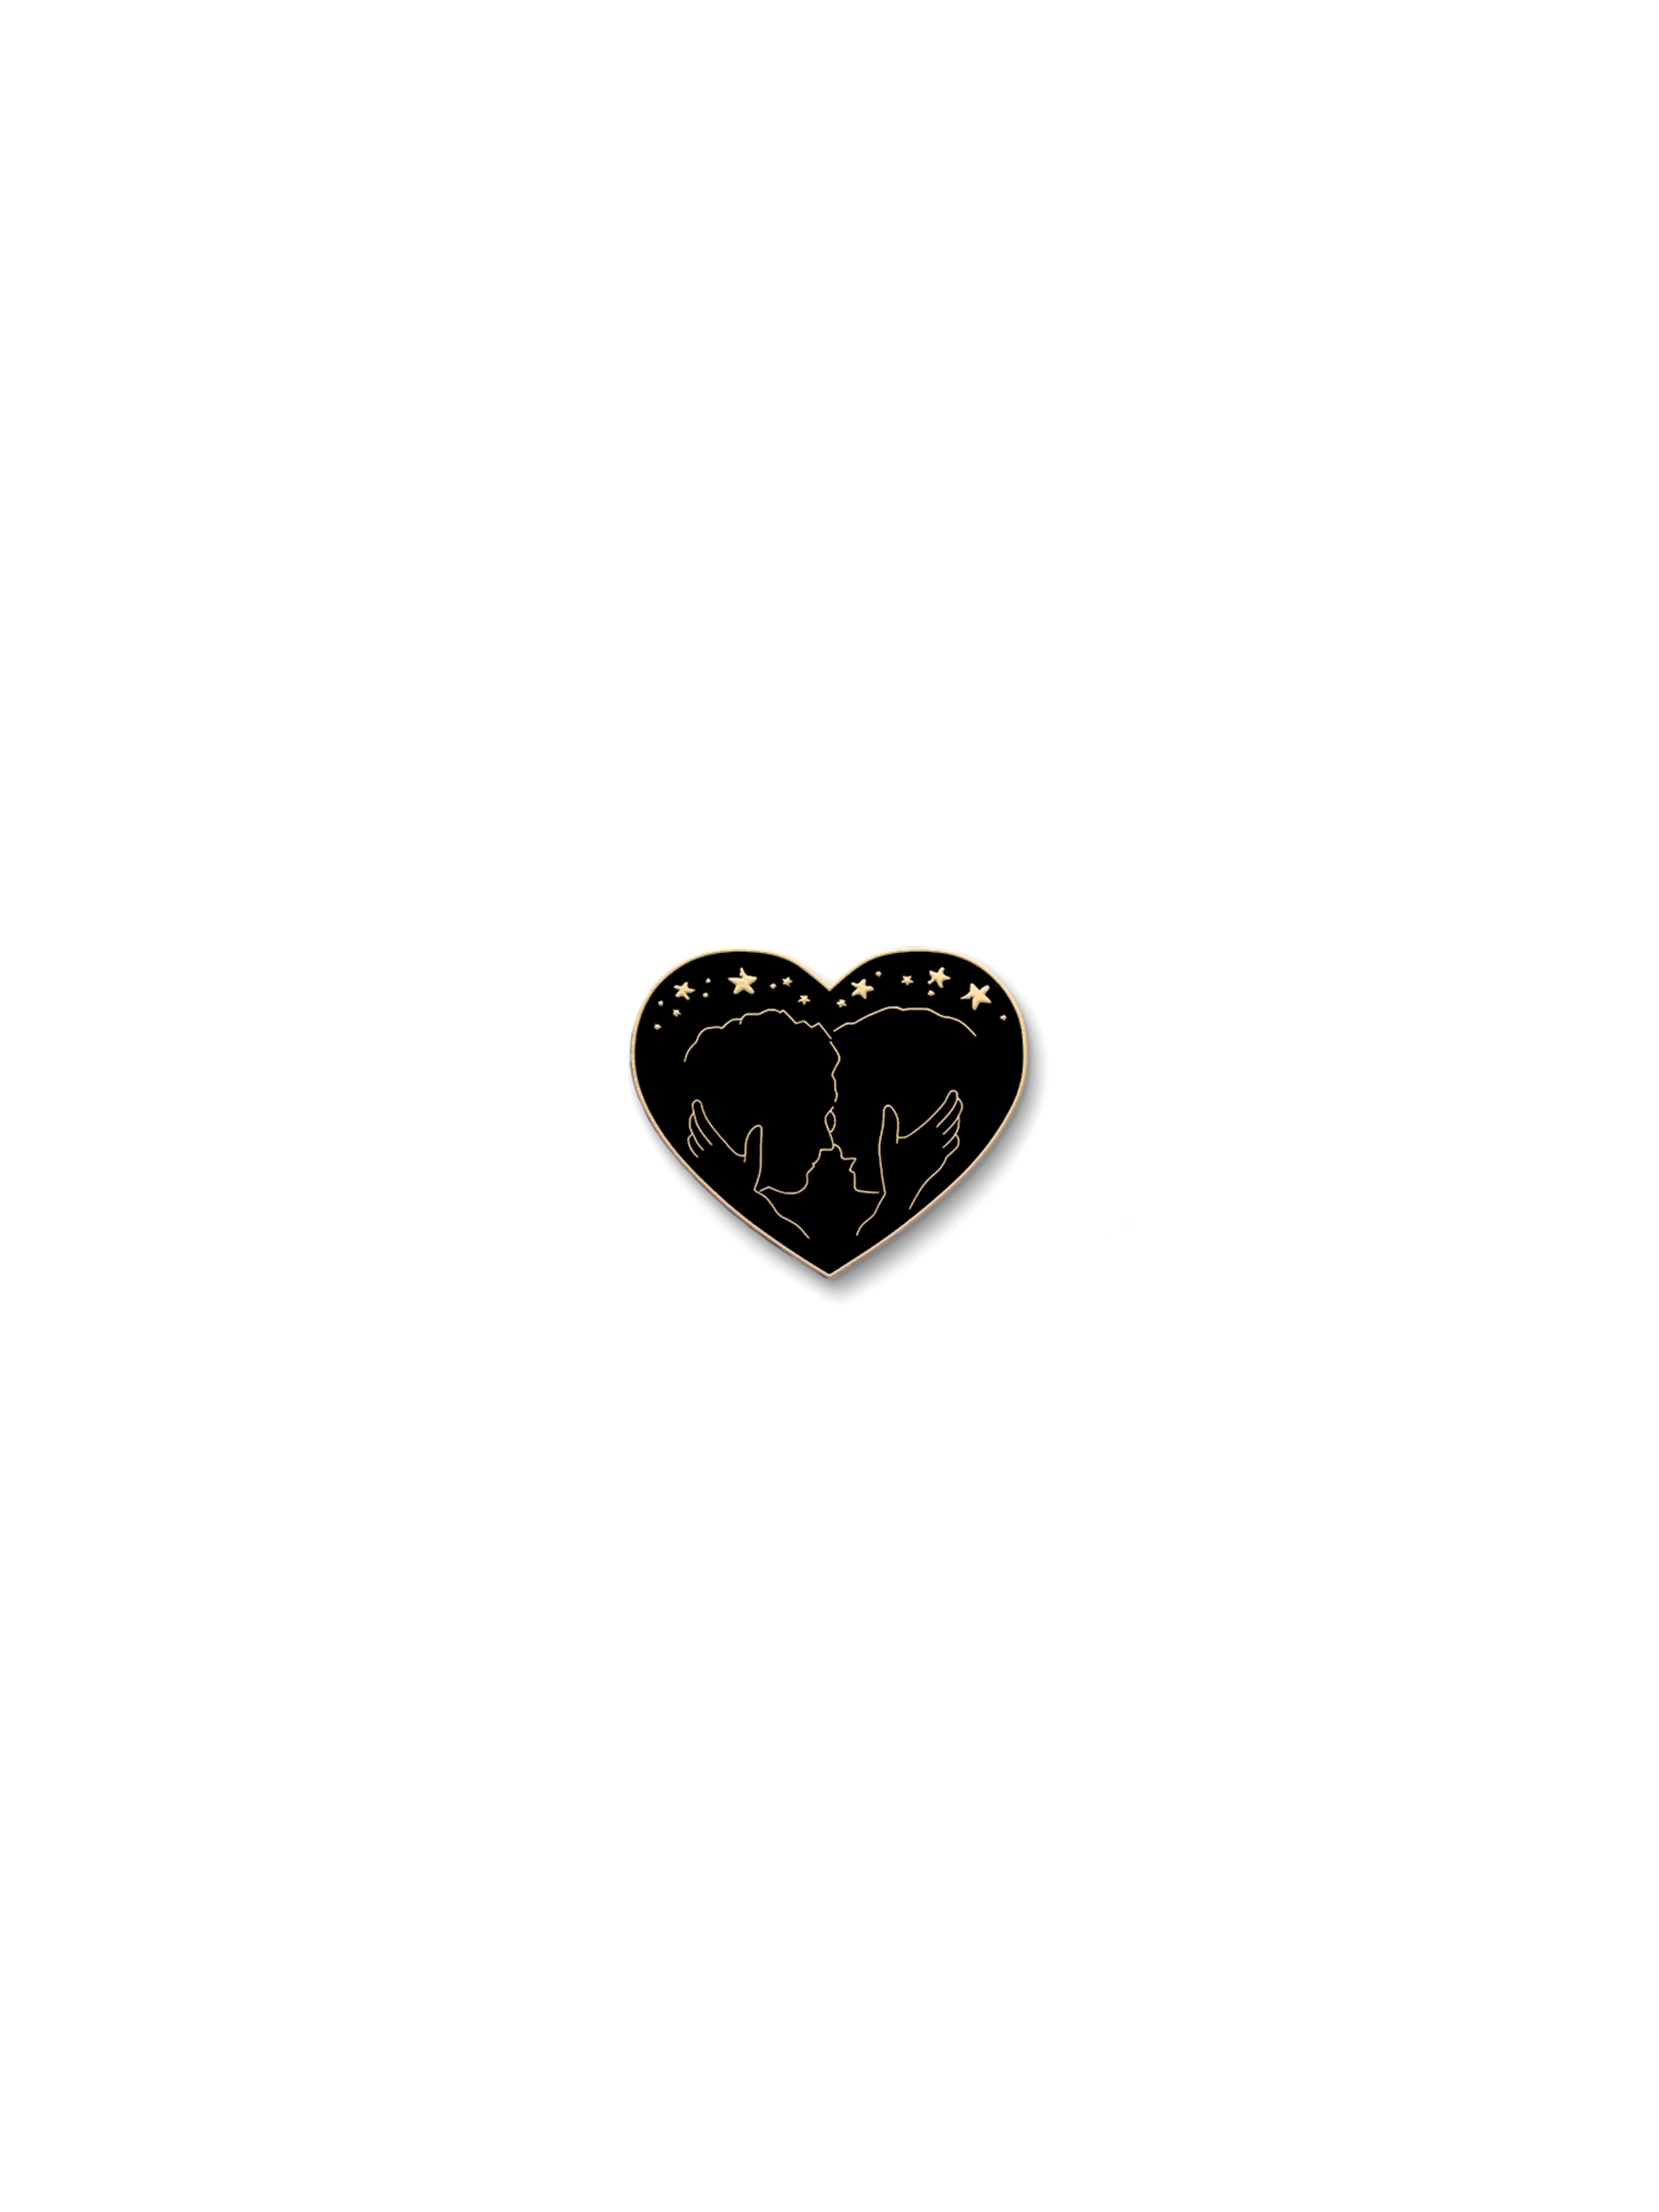 STARRY NIGHT MALEX LOVE PIN